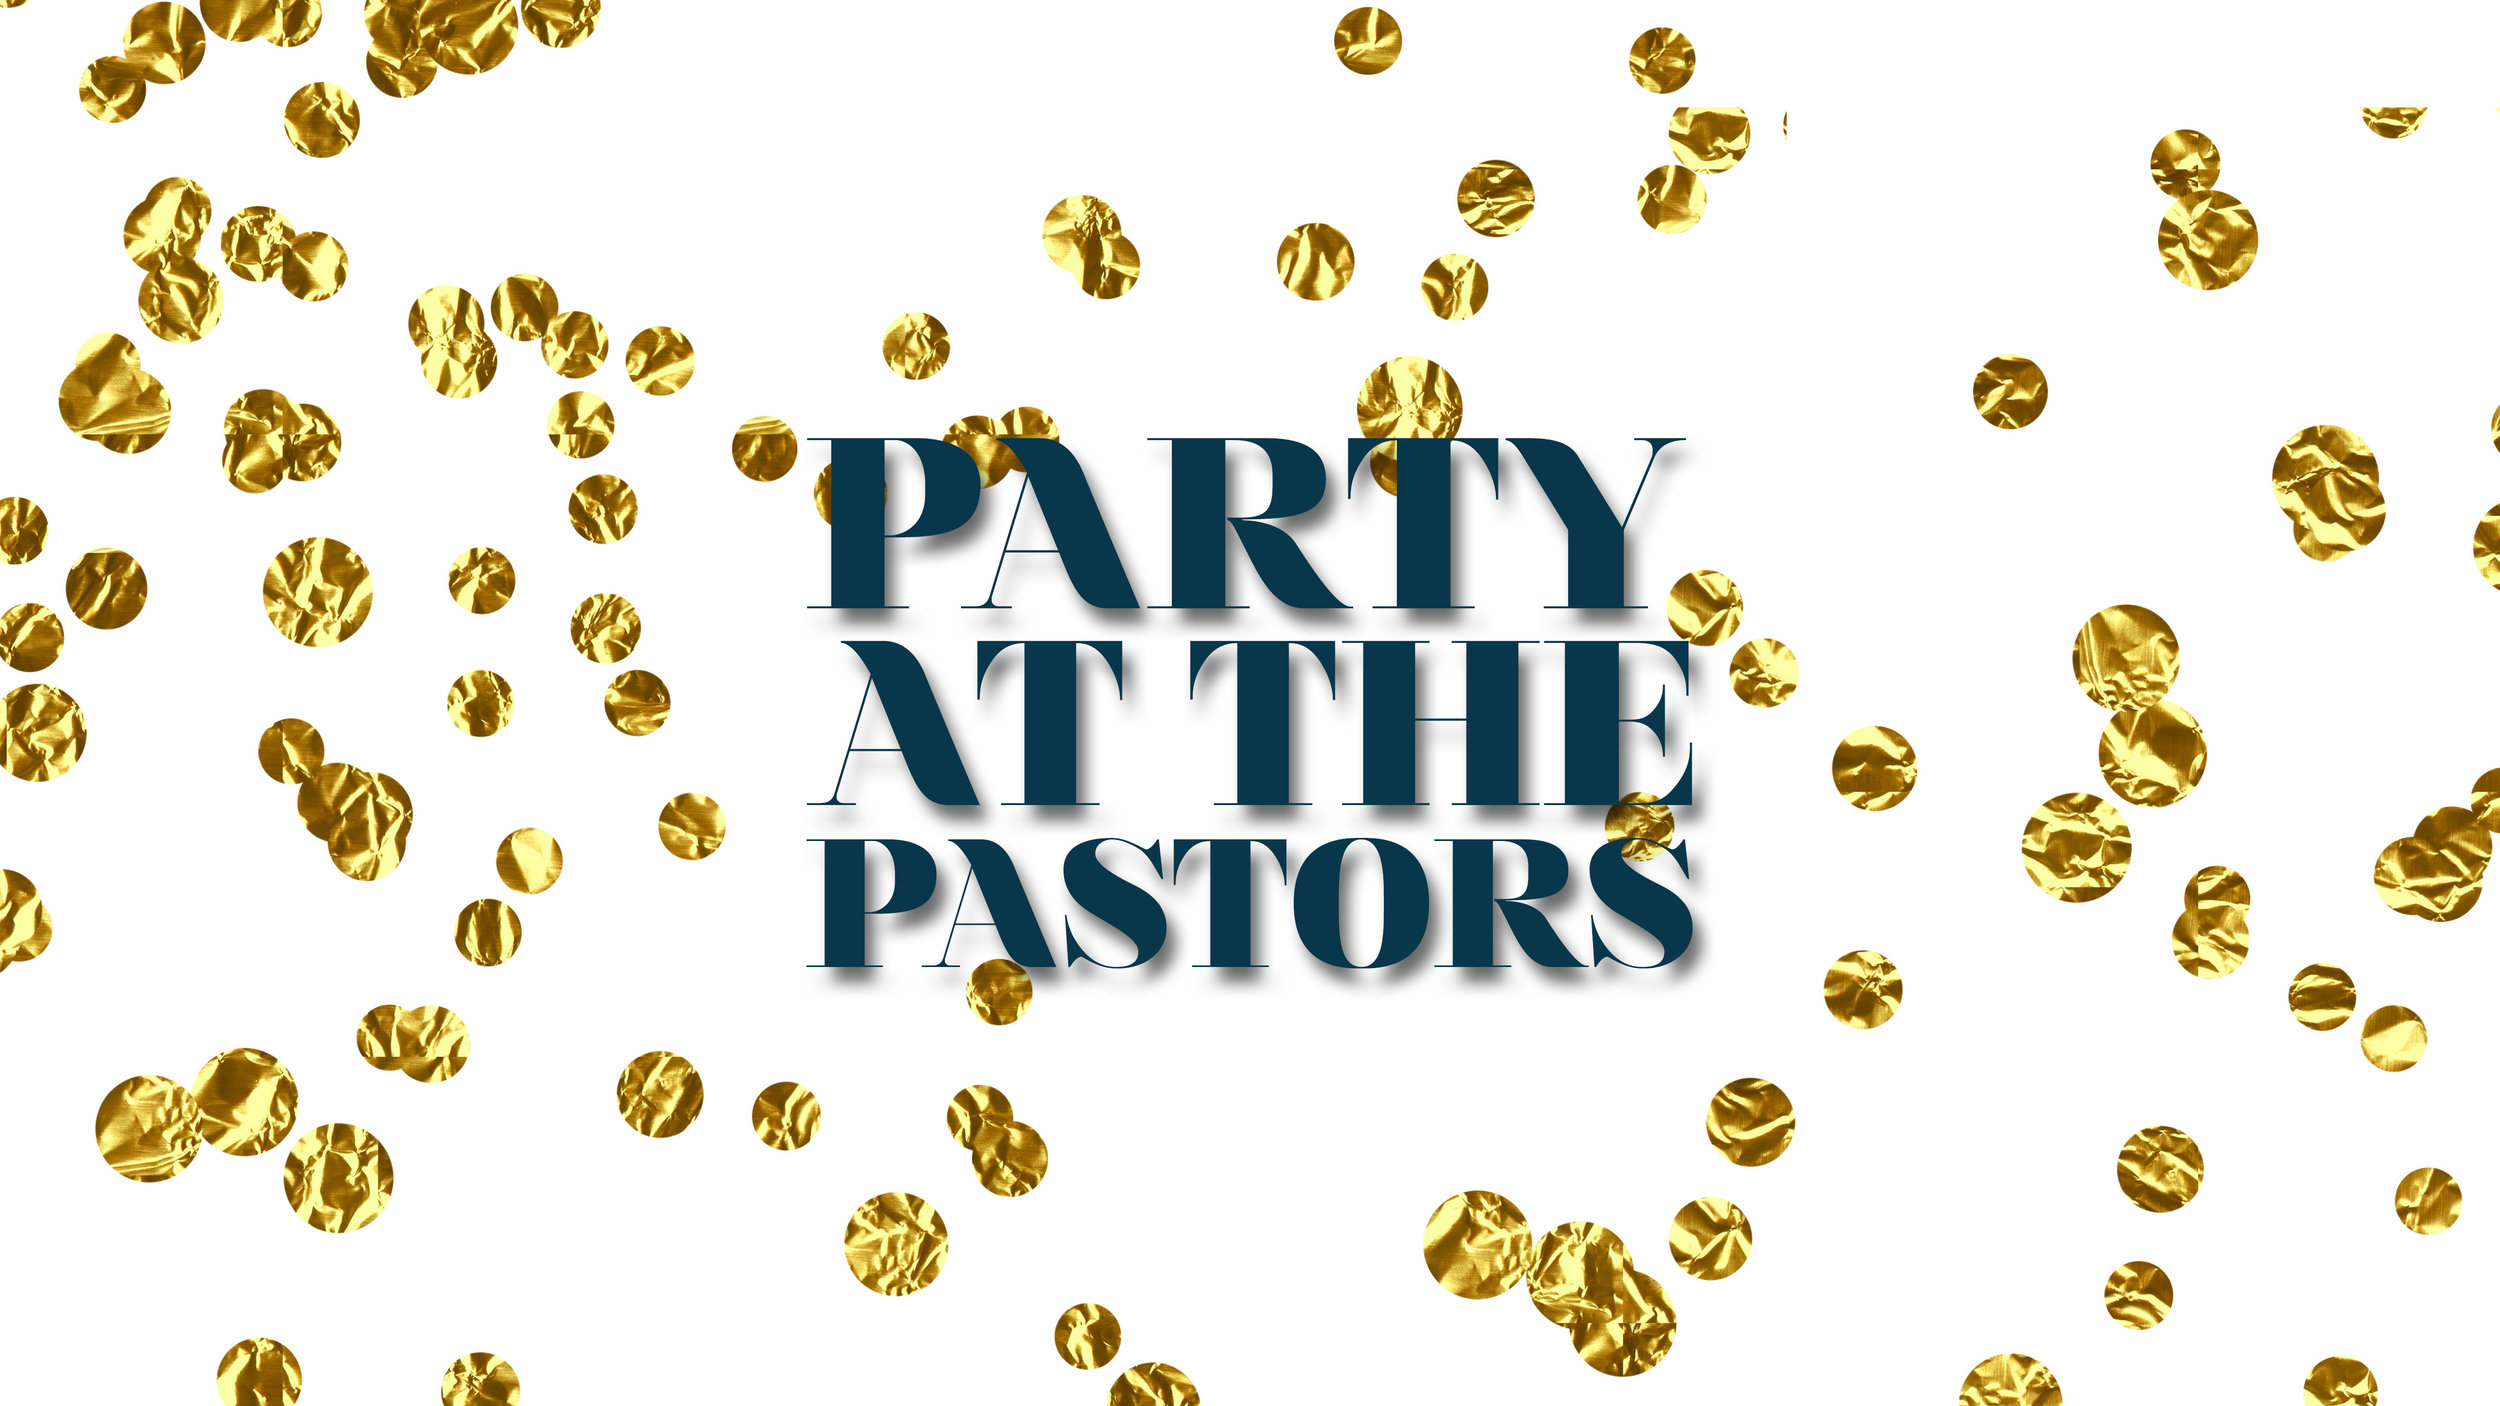 Party At The Pastors.jpg